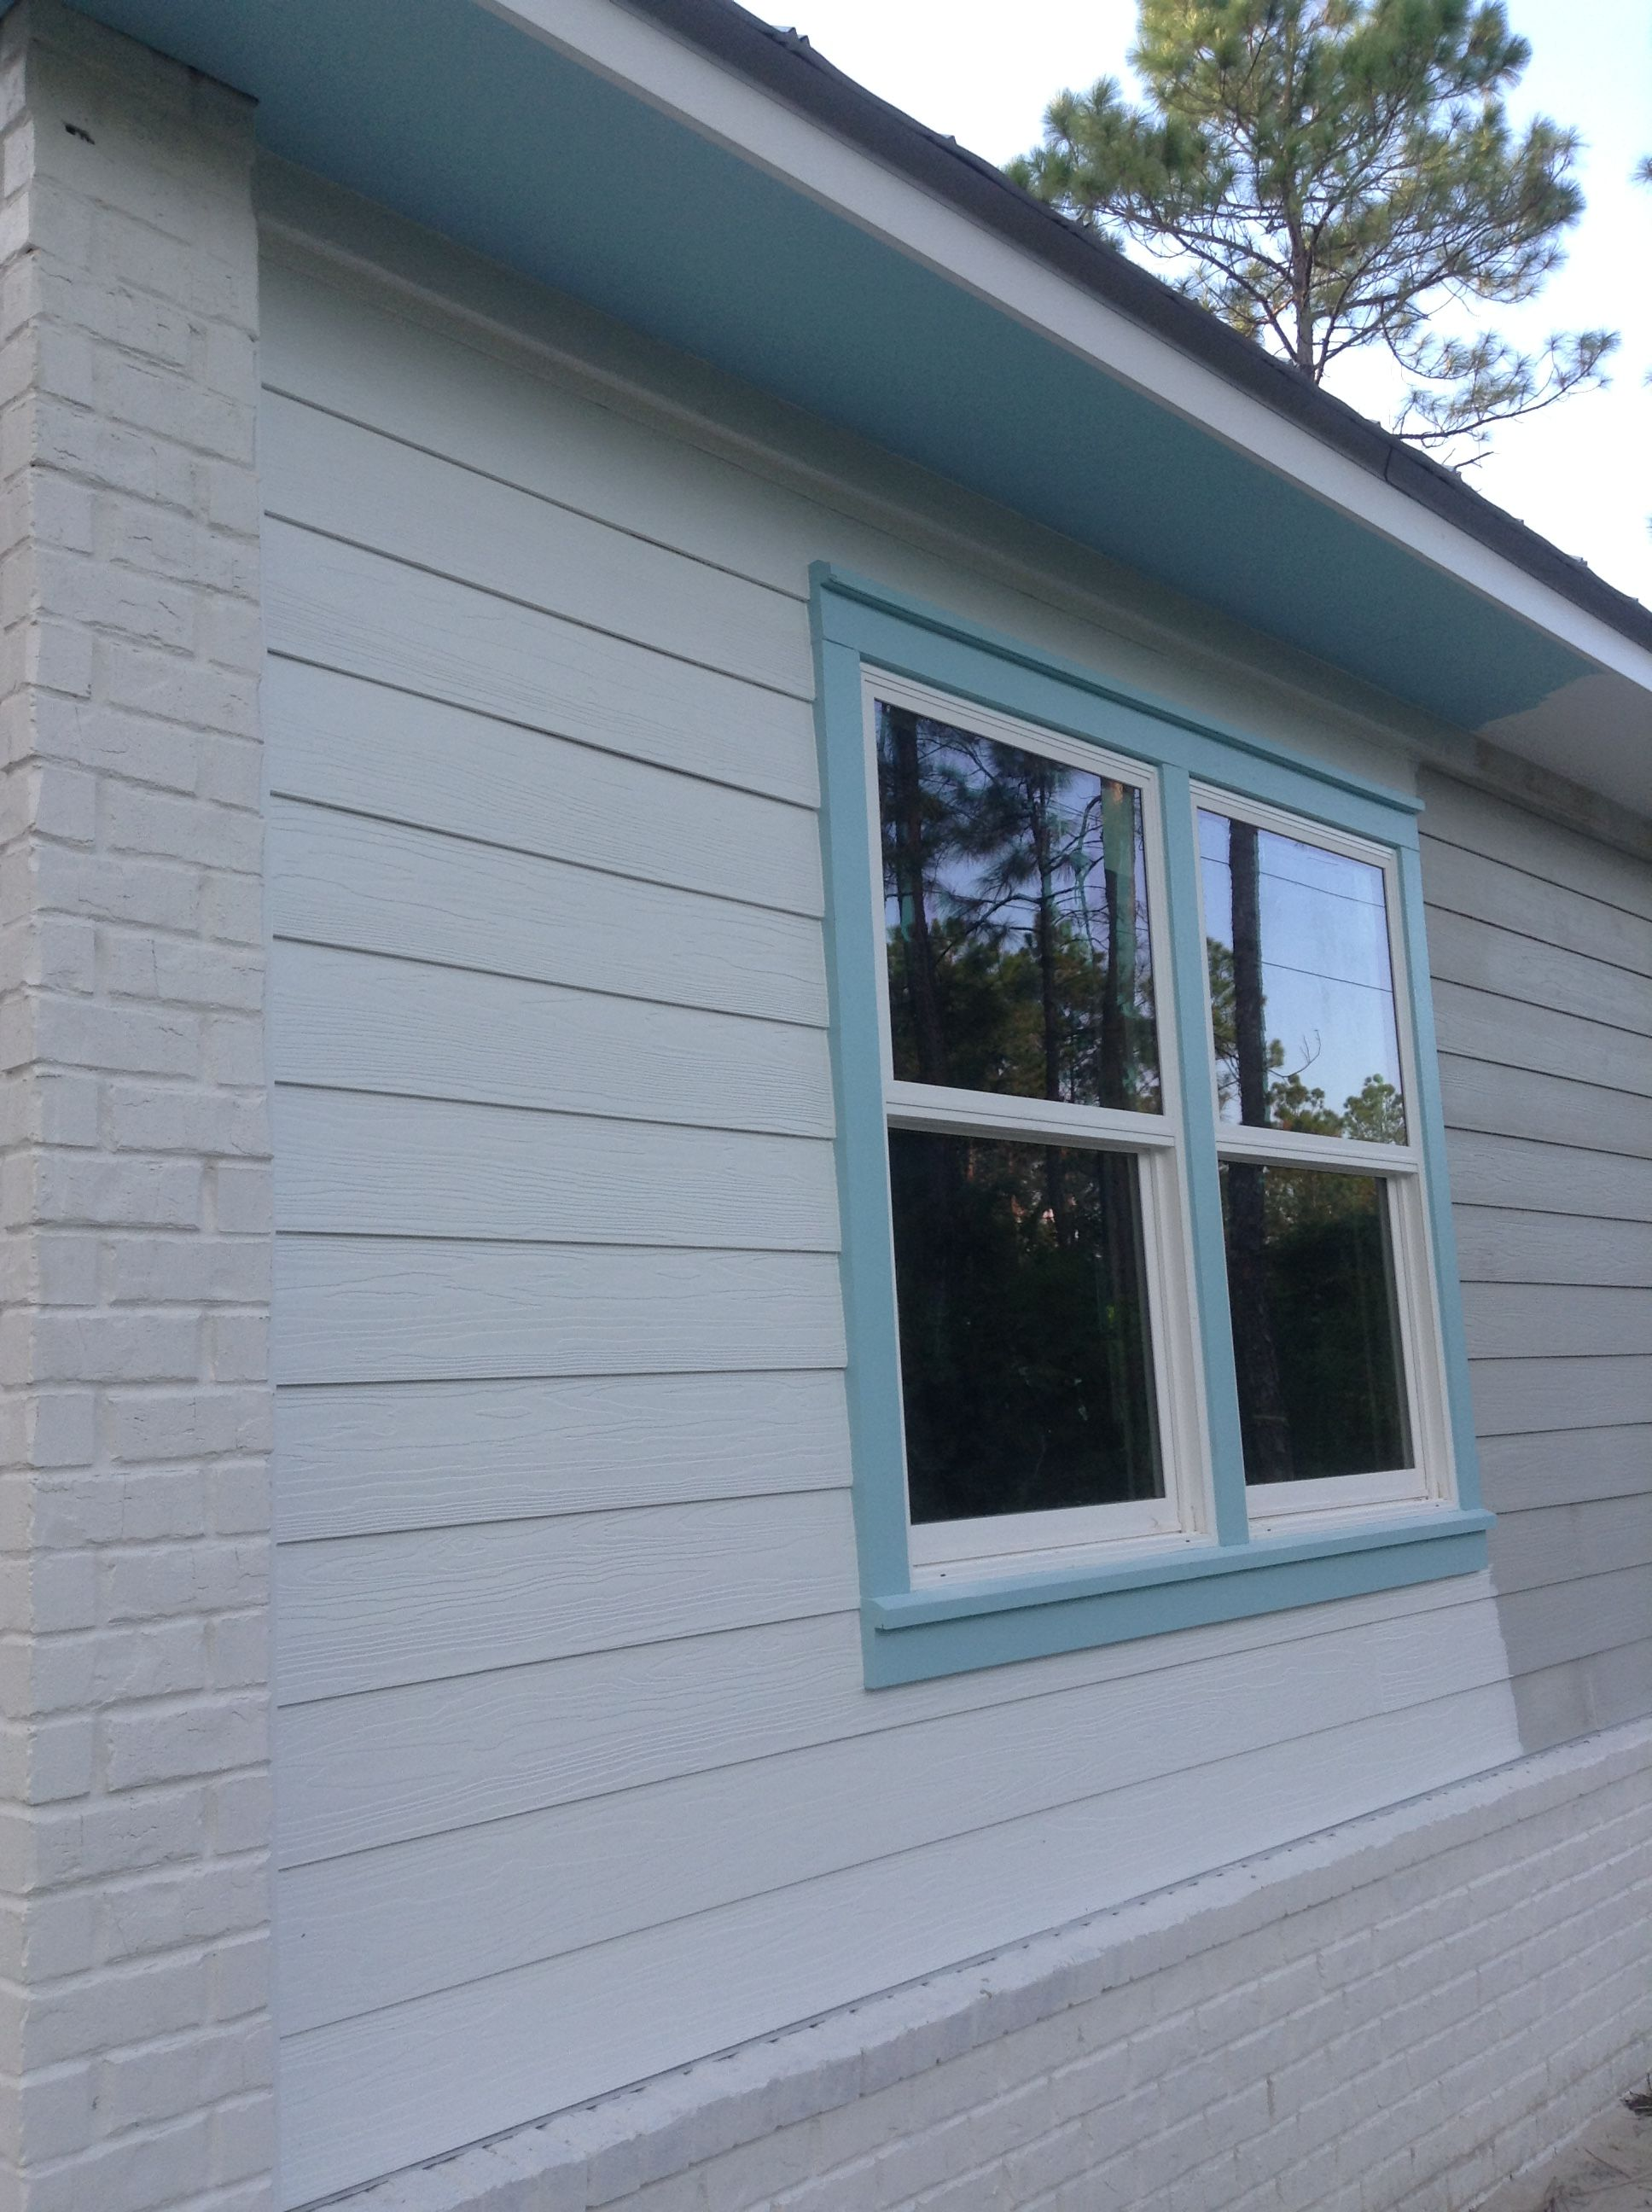 Exterior Is White Galvanized Metal Roof Sw Cay Blue On Window Trim And Soffits And Possibly The Screen Galvanized Metal Roof Screened Porch Doors Window Trim